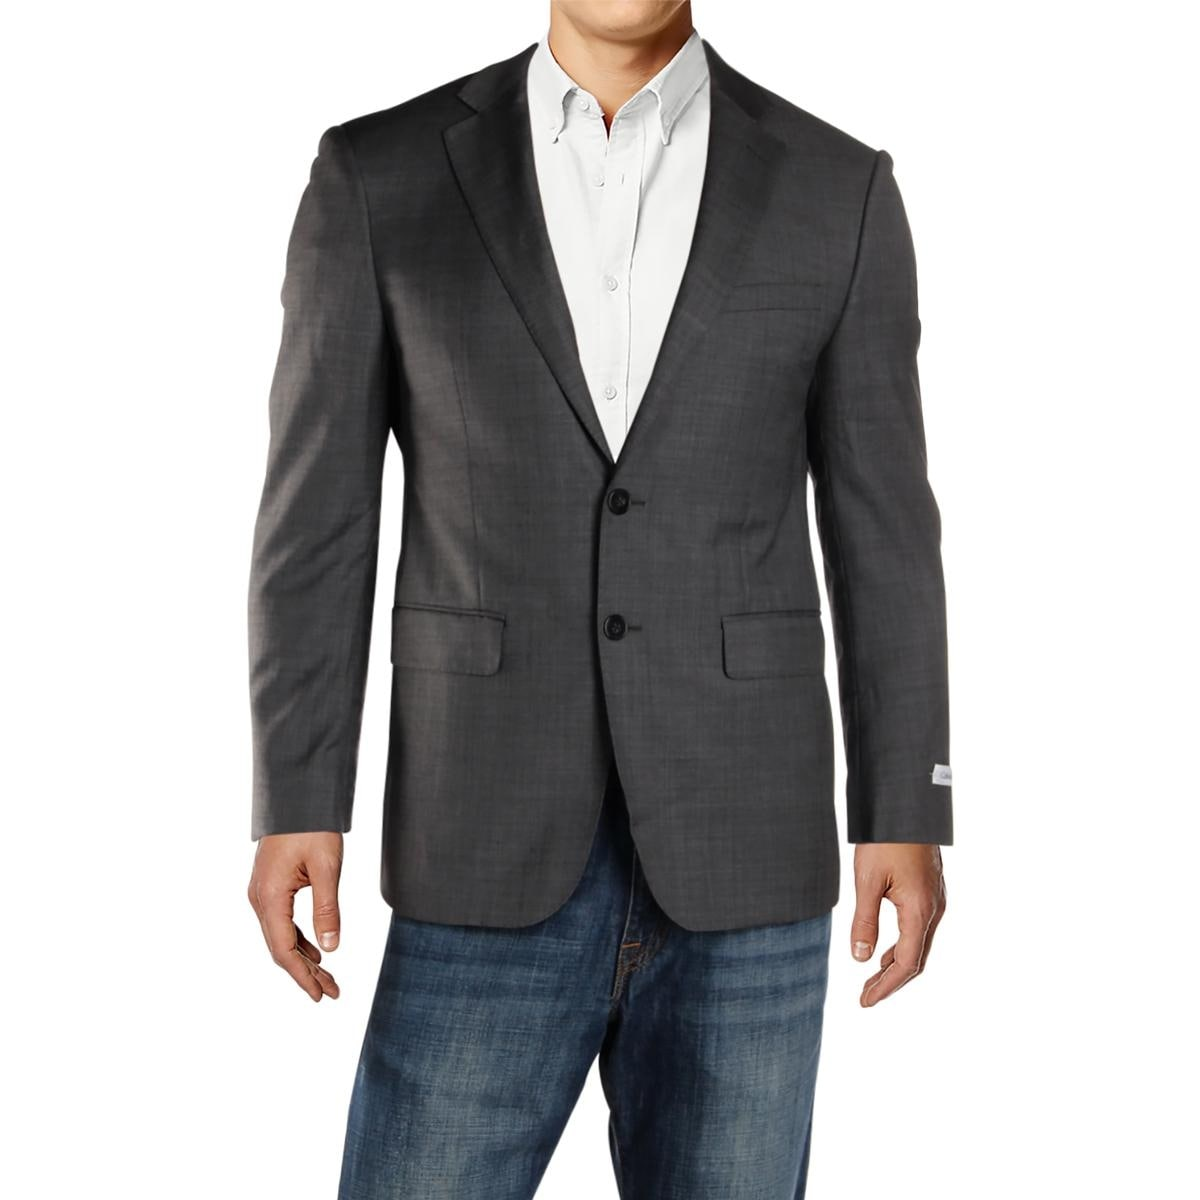 82302b5802 Shop Calvin Klein Mens Two-Button Blazer Wool Extreme Slim Fit - On Sale -  Free Shipping On Orders Over  45 - Overstock - 26385604